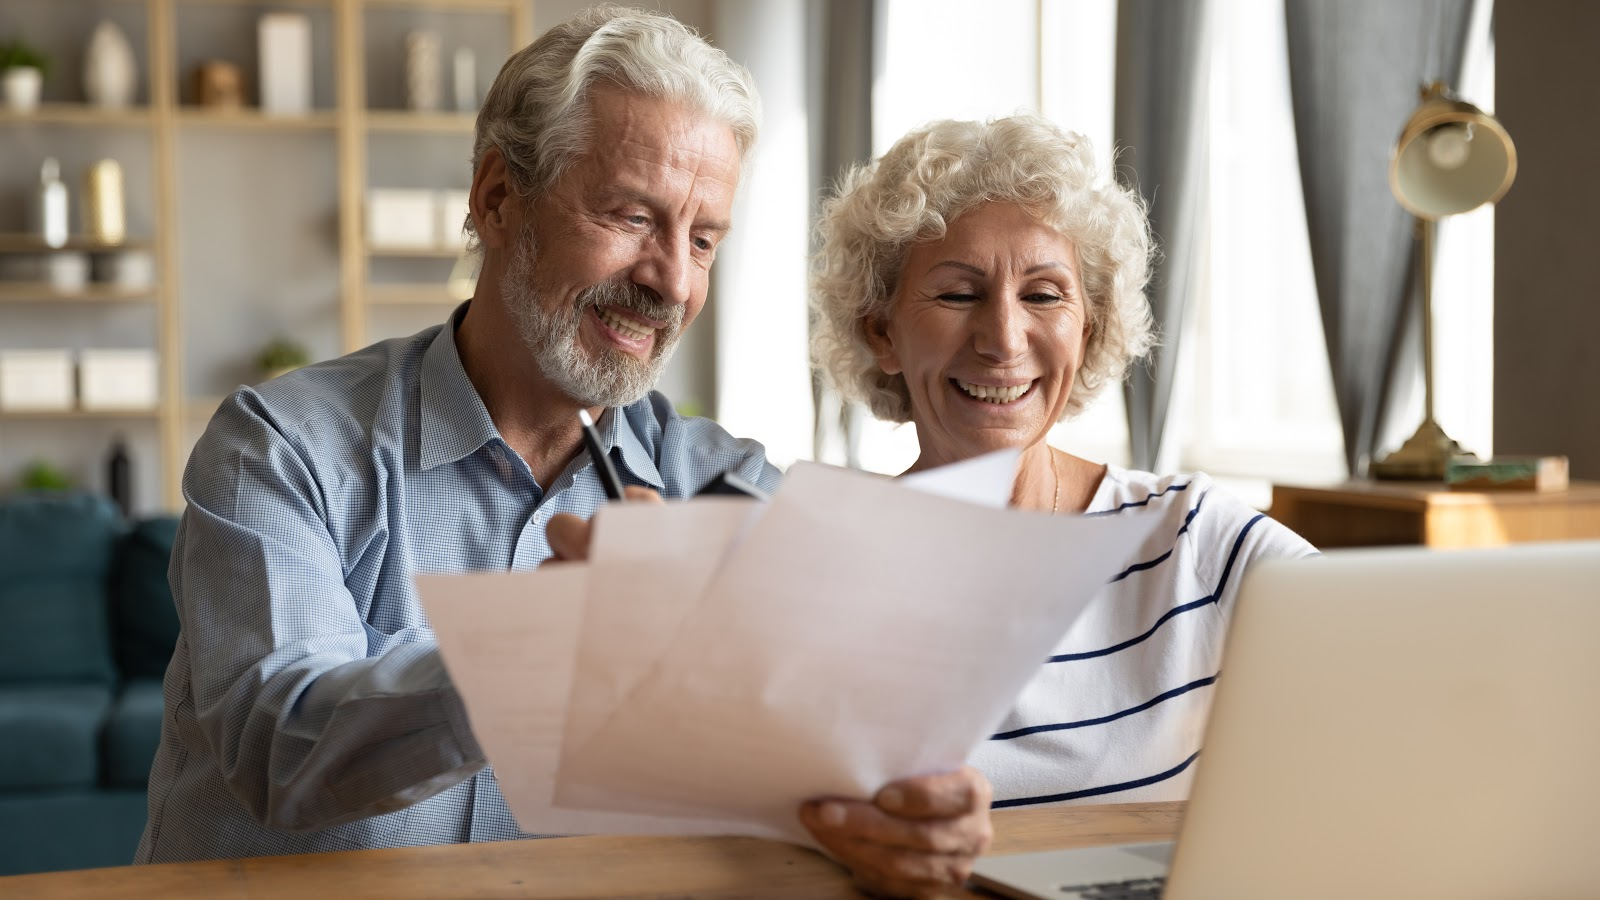 A smiling couple looks over their finances